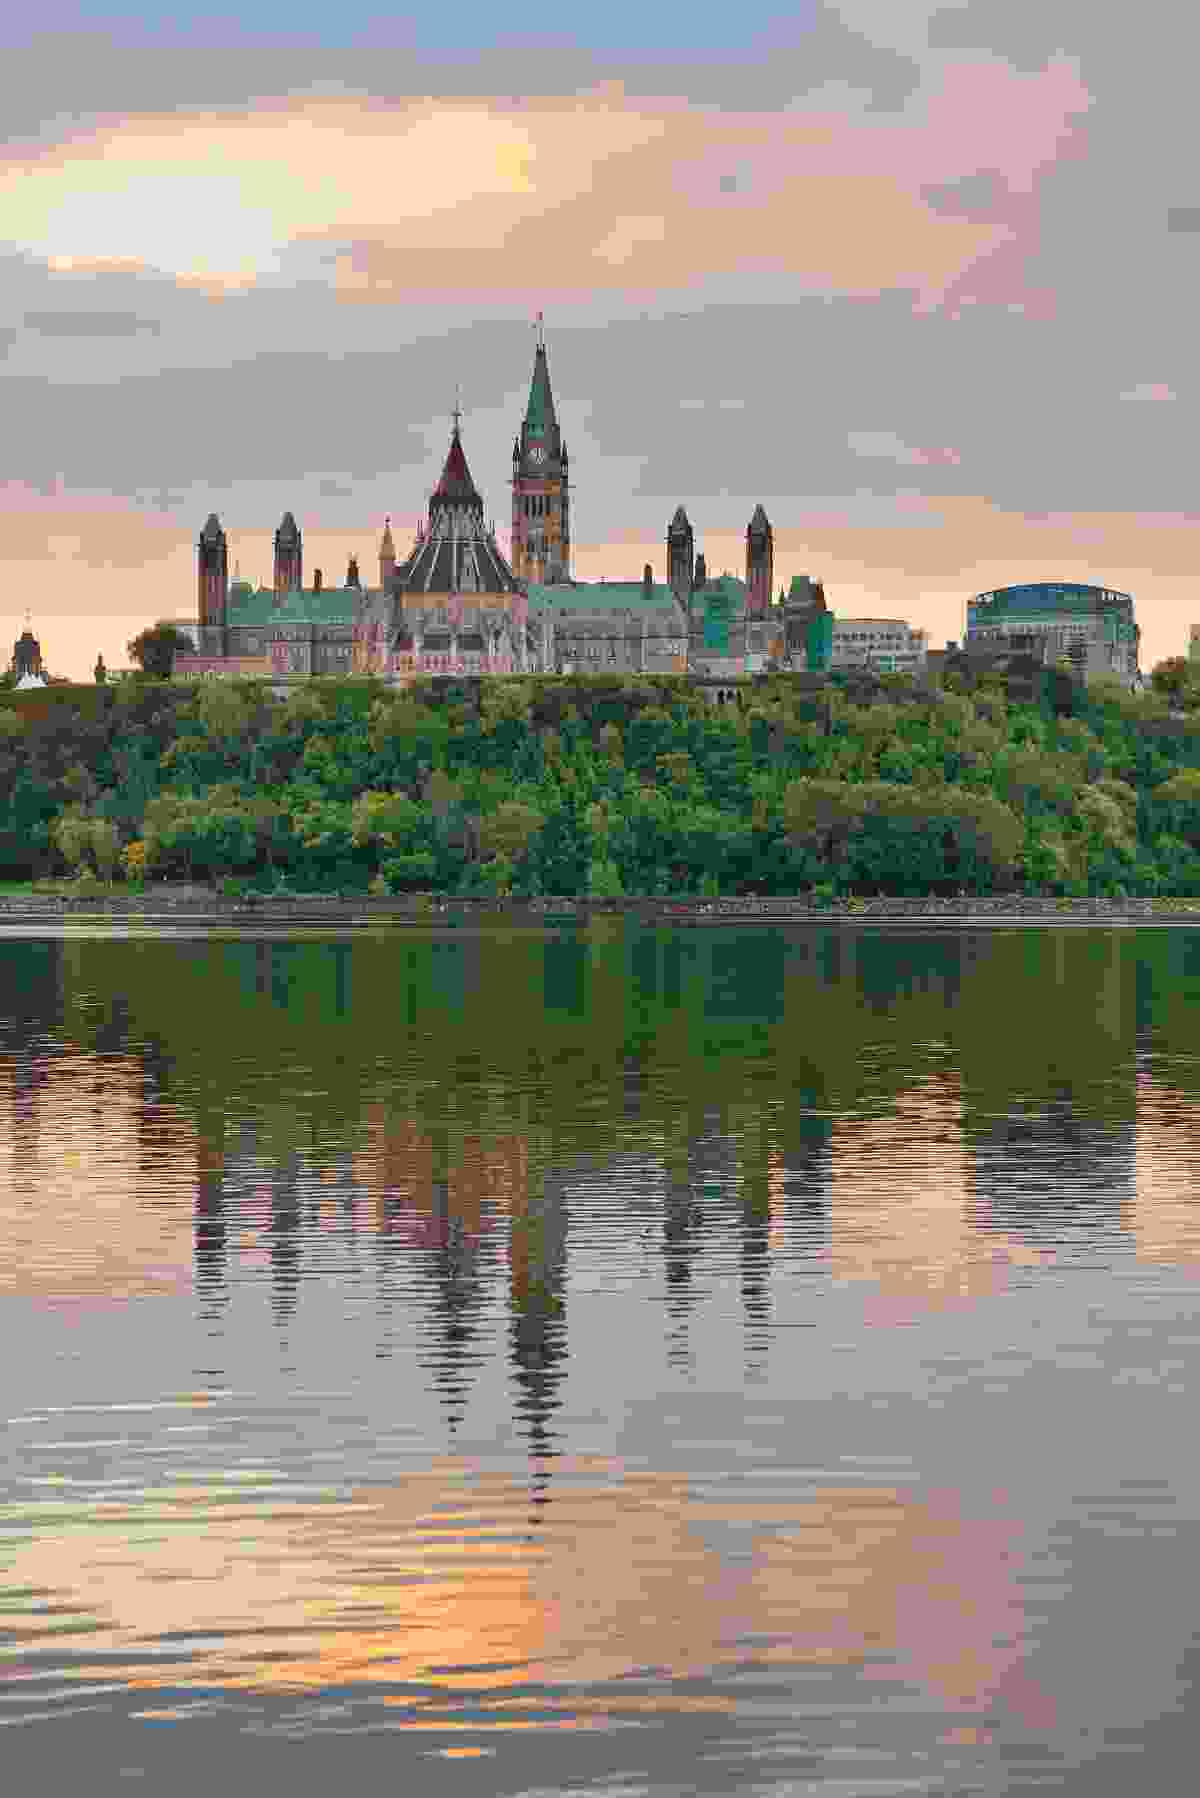 Ottawa city skyline at sunrise (Shutterstock)